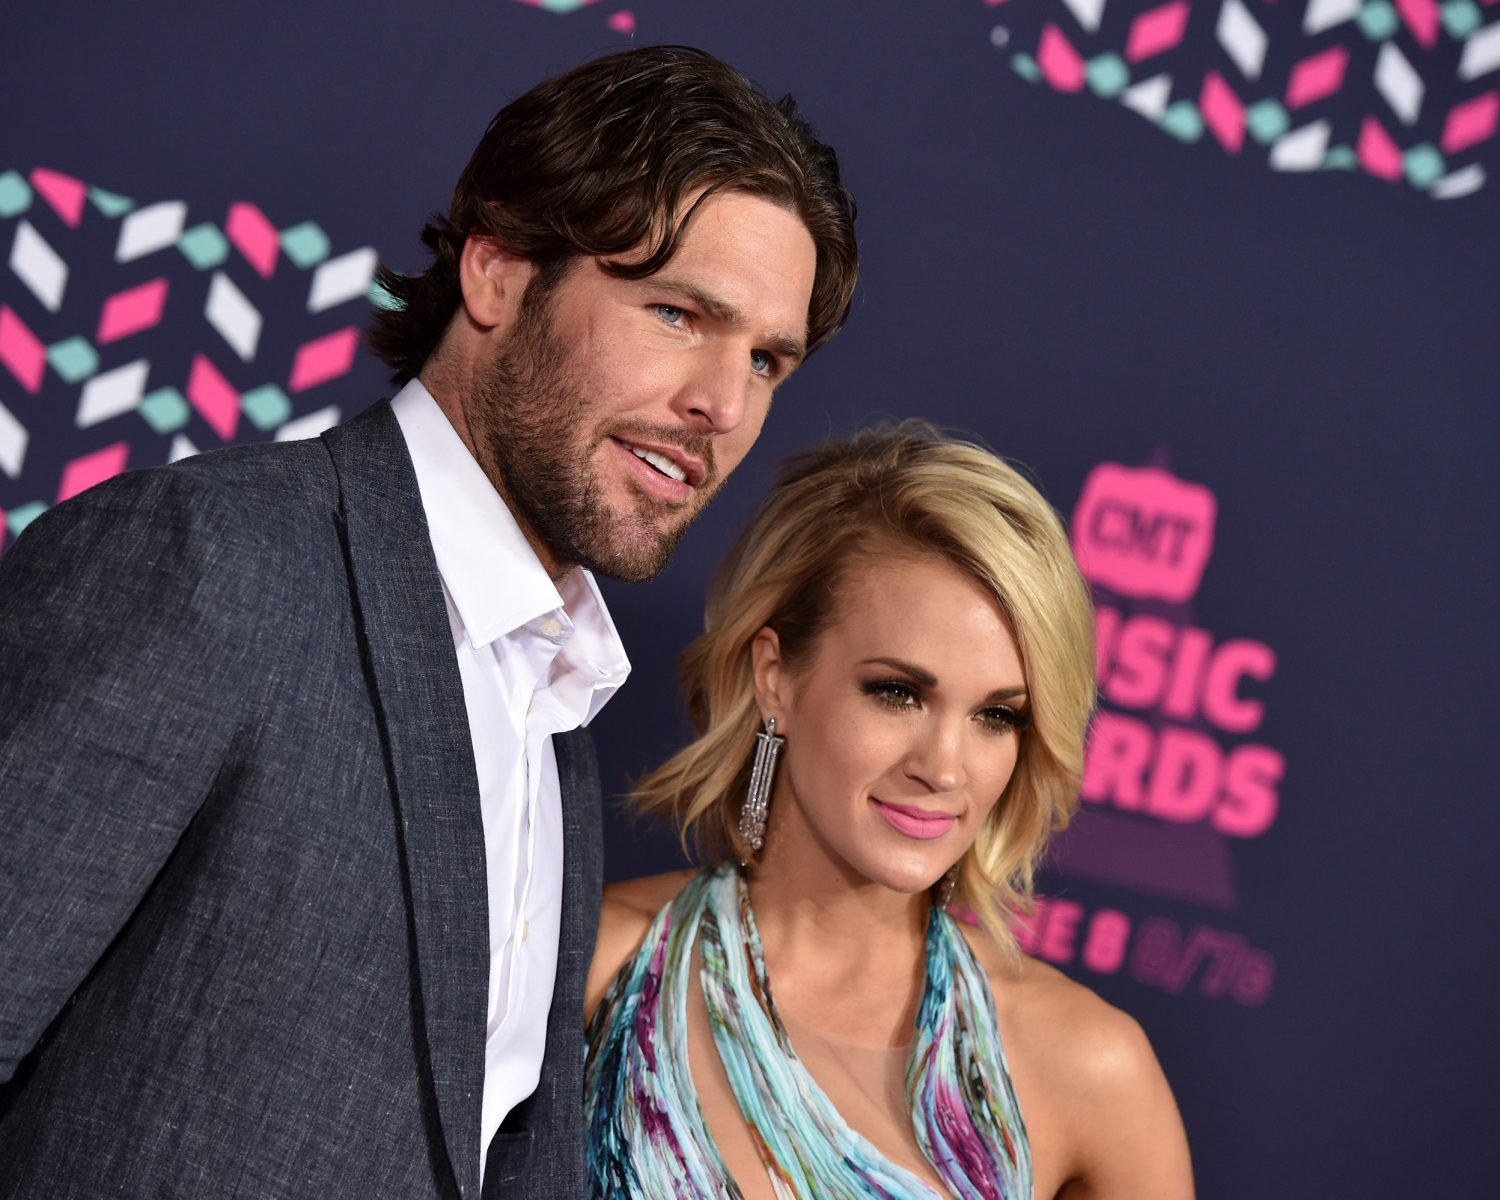 Carrie Underwood Shares Rare Engagement Ring Photo From Mike Fisher